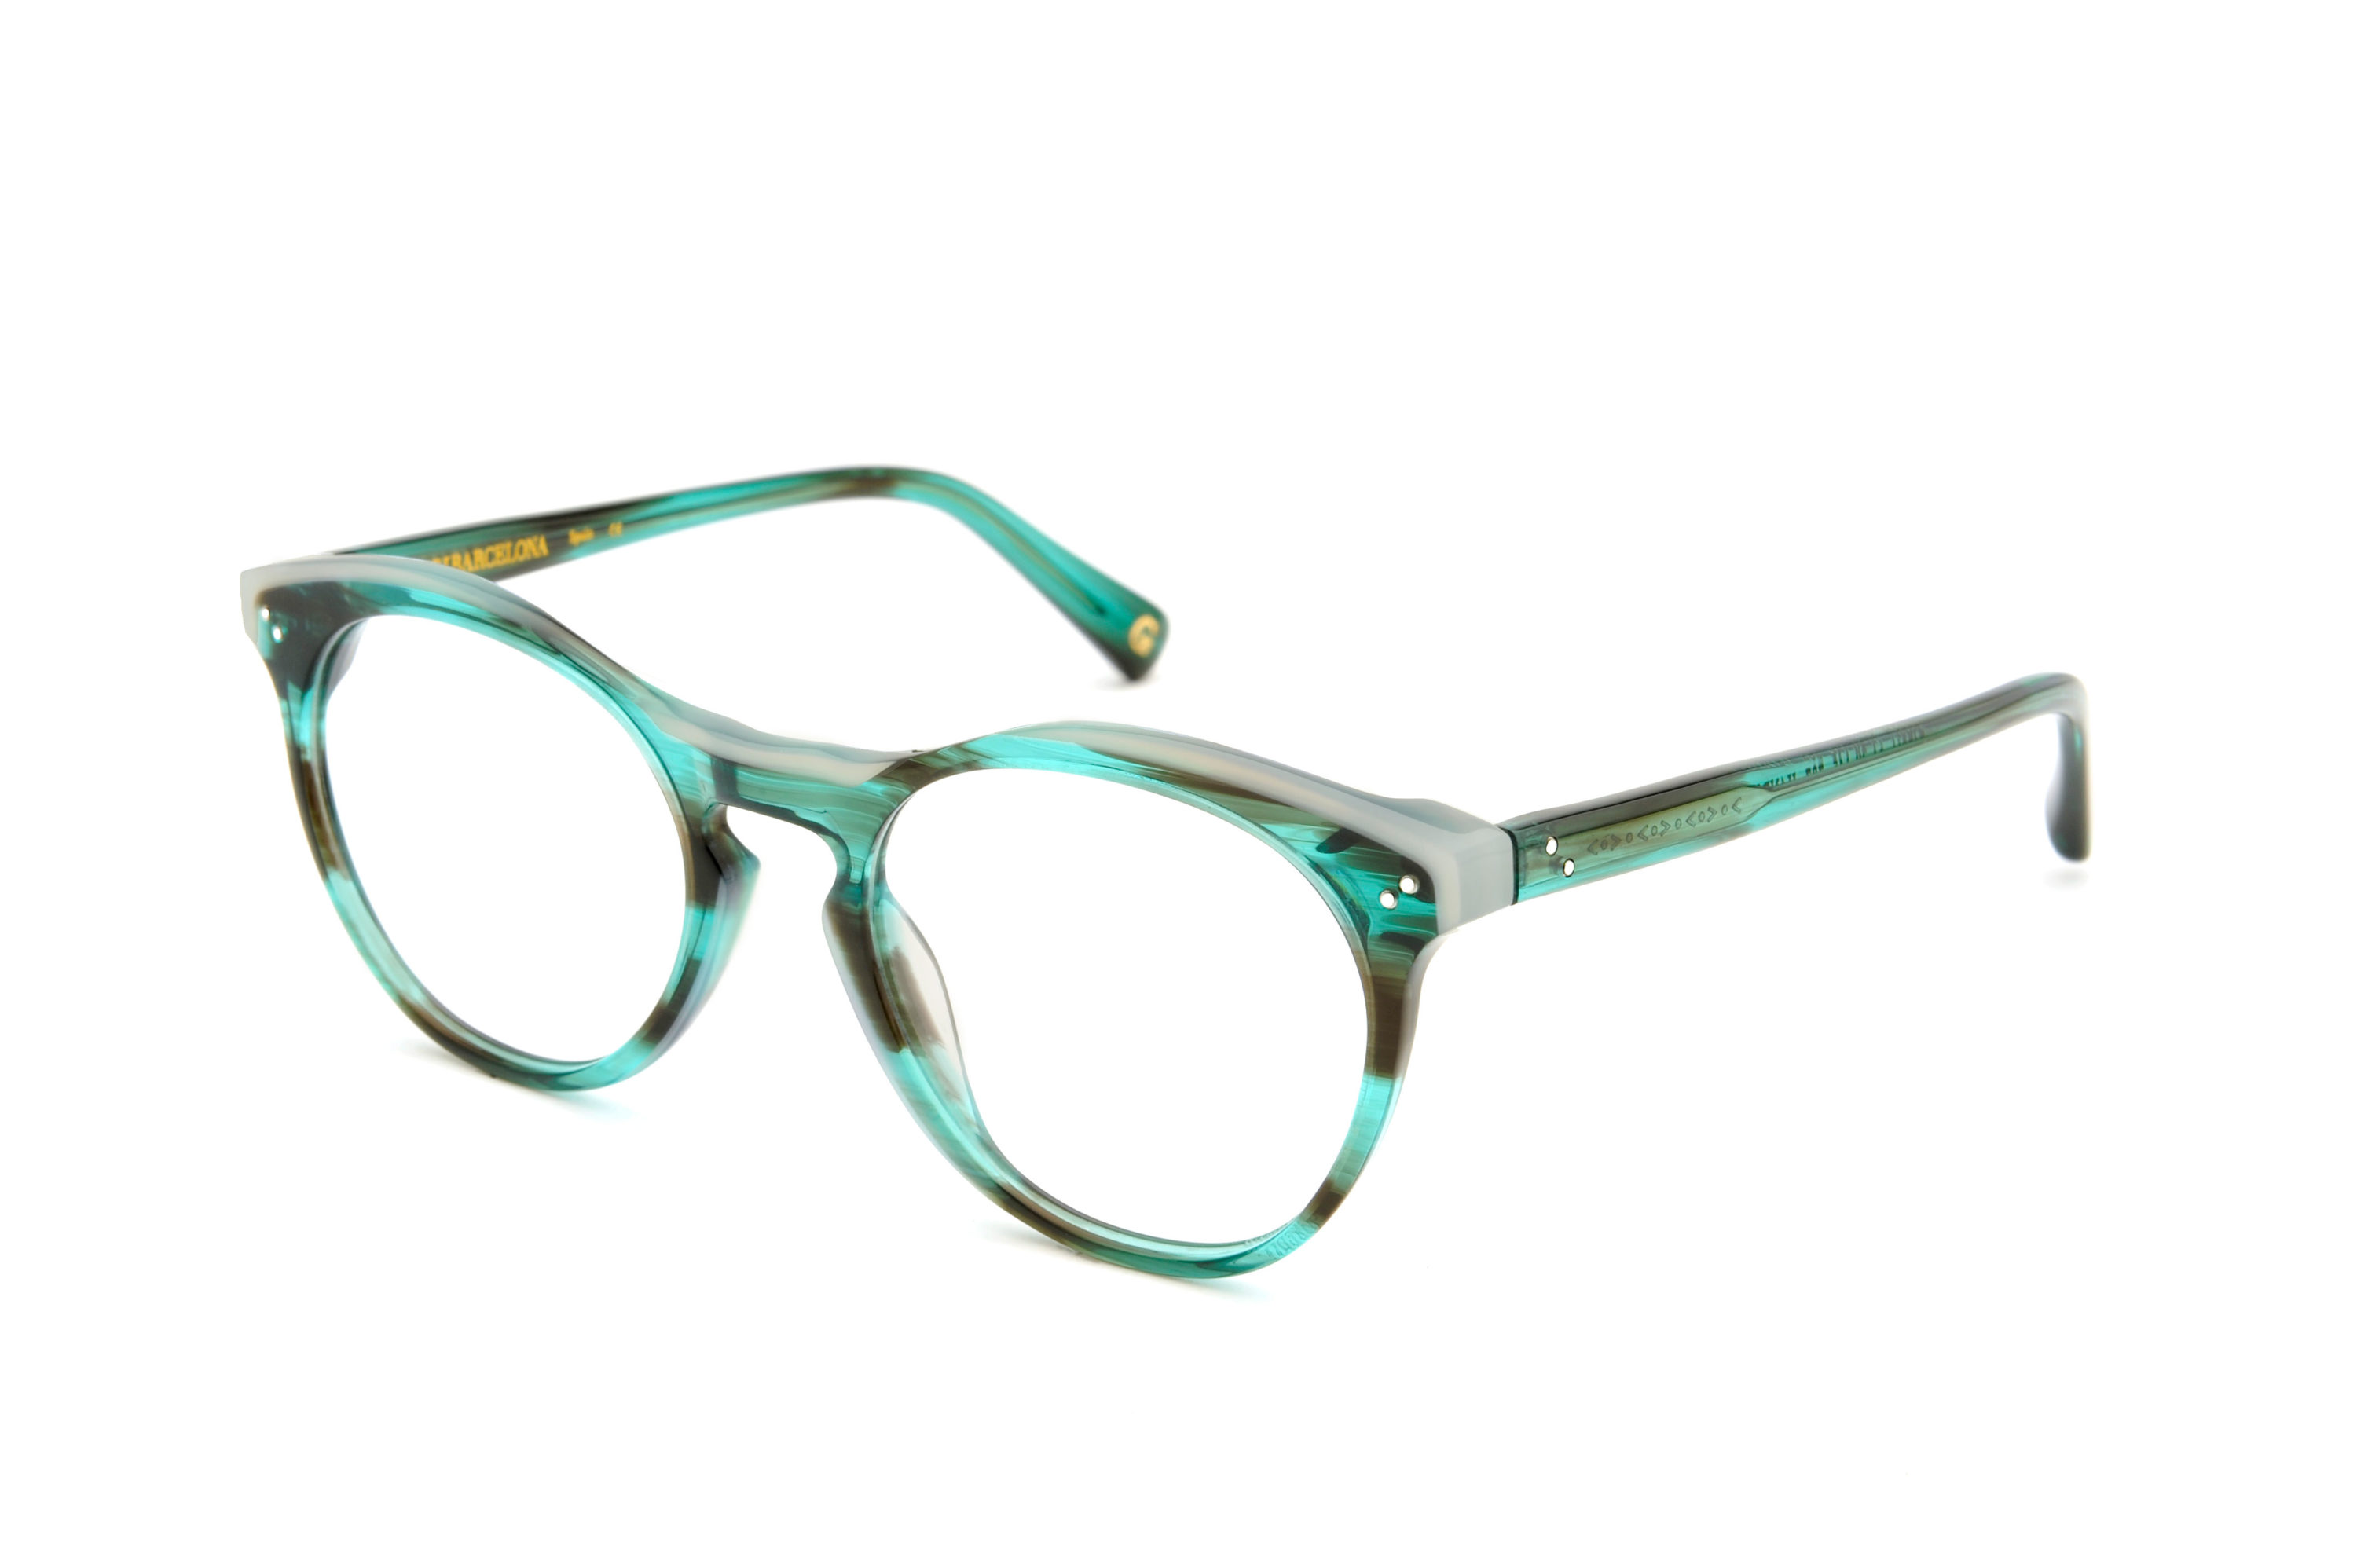 Shoreditch acetate rounded green sunglasses by GIGI Studios